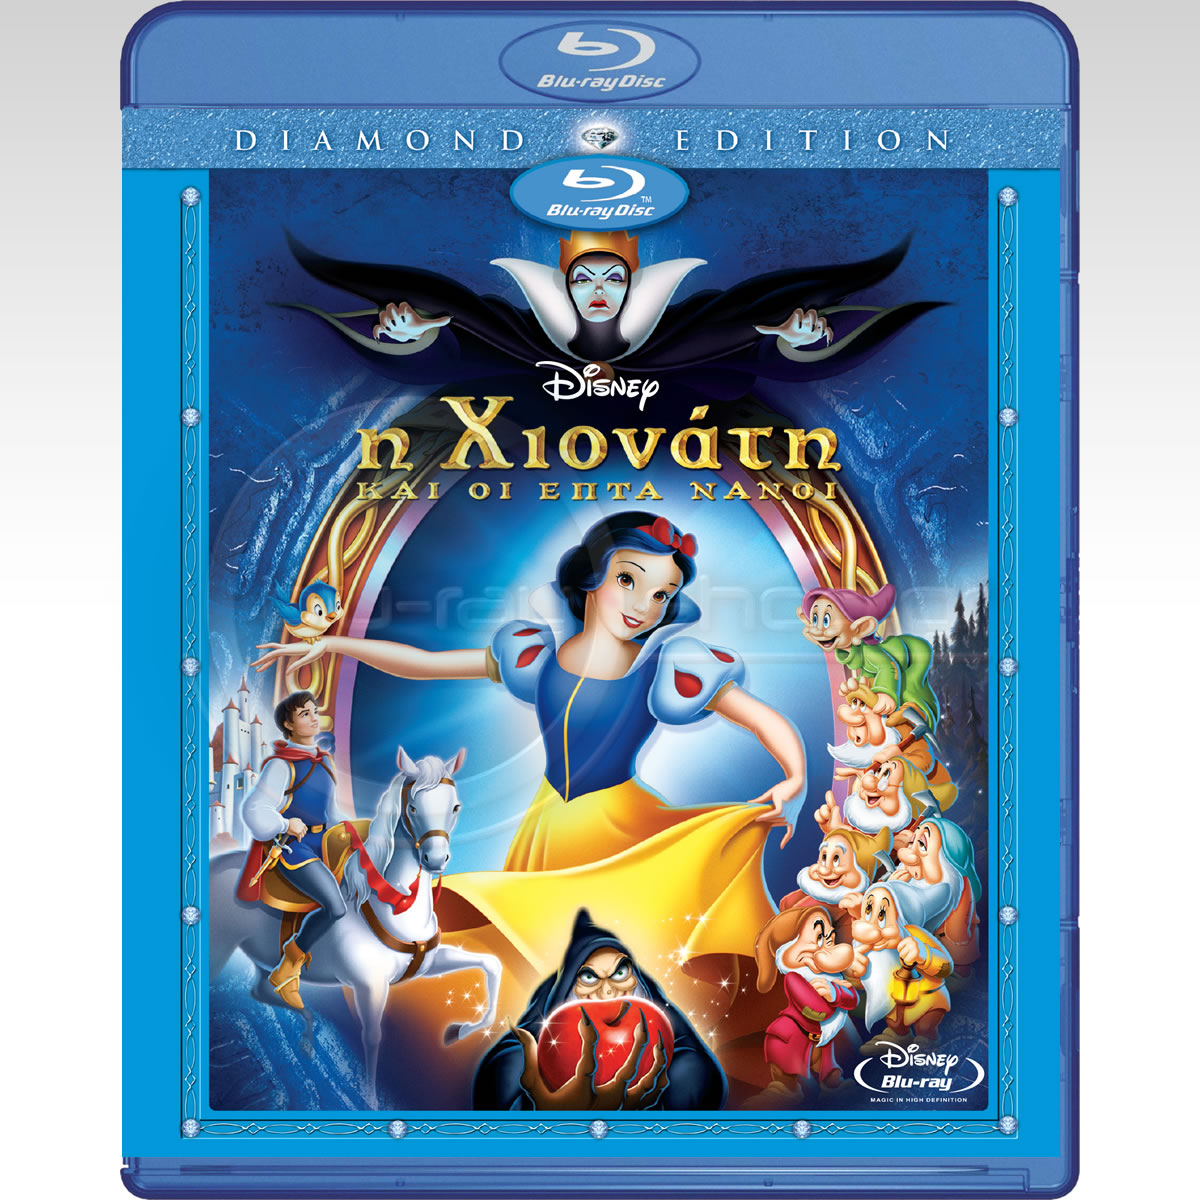 THE SNOW WHITE AND THE SEVEN DWARFS Diamond Edition - � ������� ��� �� ���� ����� ����������� ������ (2 BLU-RAY) & ��� ��������